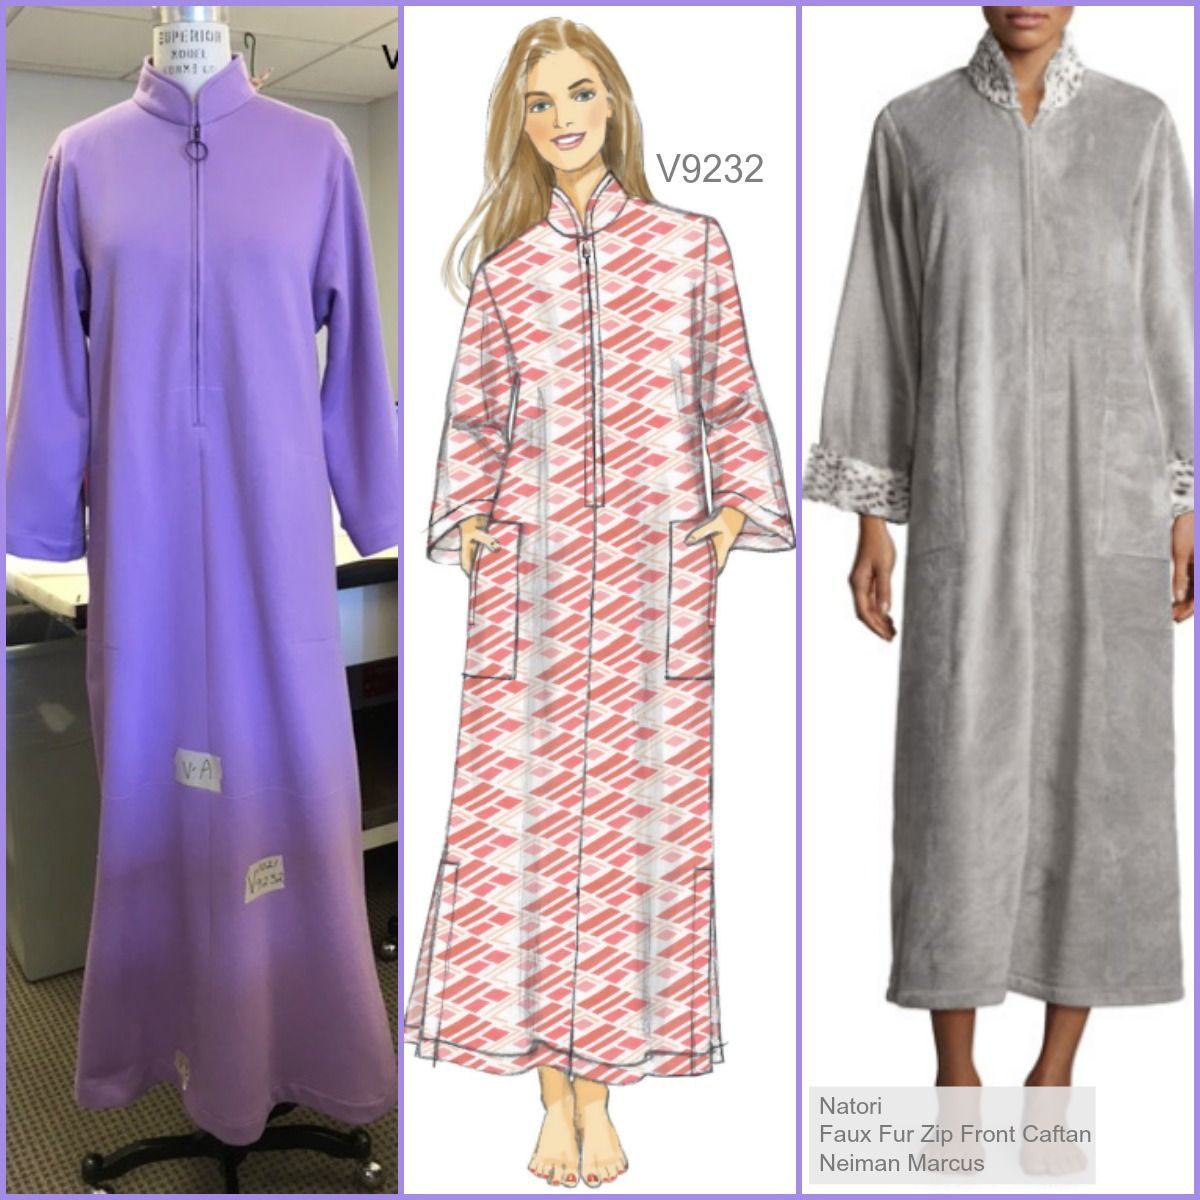 Sew the look vogue patterns v9232 zip robecaftan sewing pattern sew the look vogue patterns v9232 zip robecaftan sewing pattern jeuxipadfo Gallery